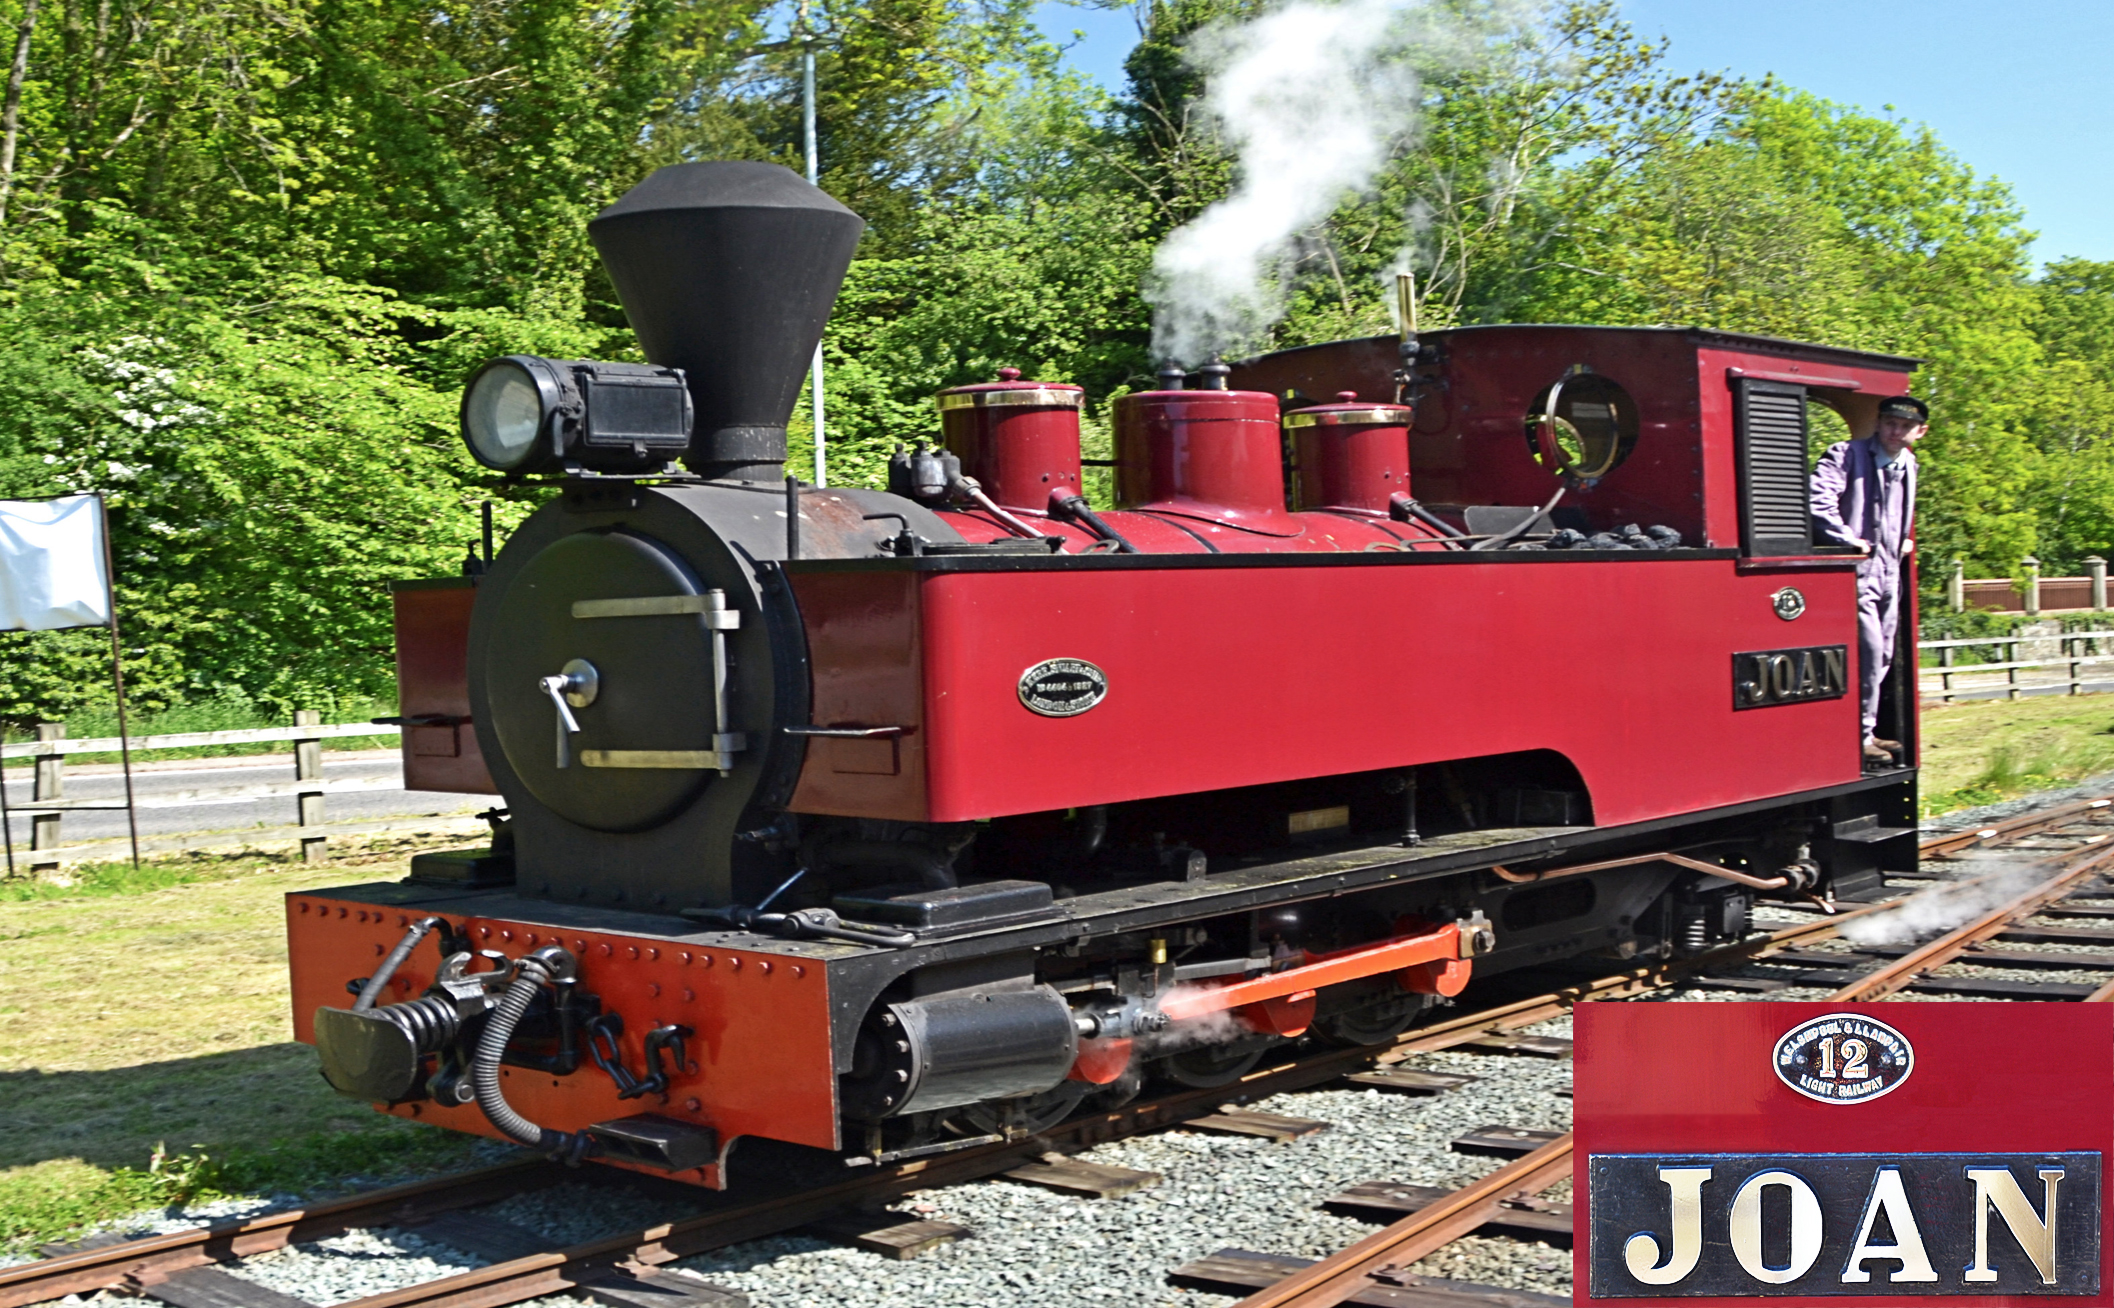 No 12 'Joan' - Welshpool and Llanfair Light Railway  Seen at Welshpool in May, running around her train in readiness for the return leg to Llanfair Caereinion, 'Joan'is a 1927 Kerr Stuart tank built for use on sugar estates   in Antigua. She commenced service on the W&L in 1977.